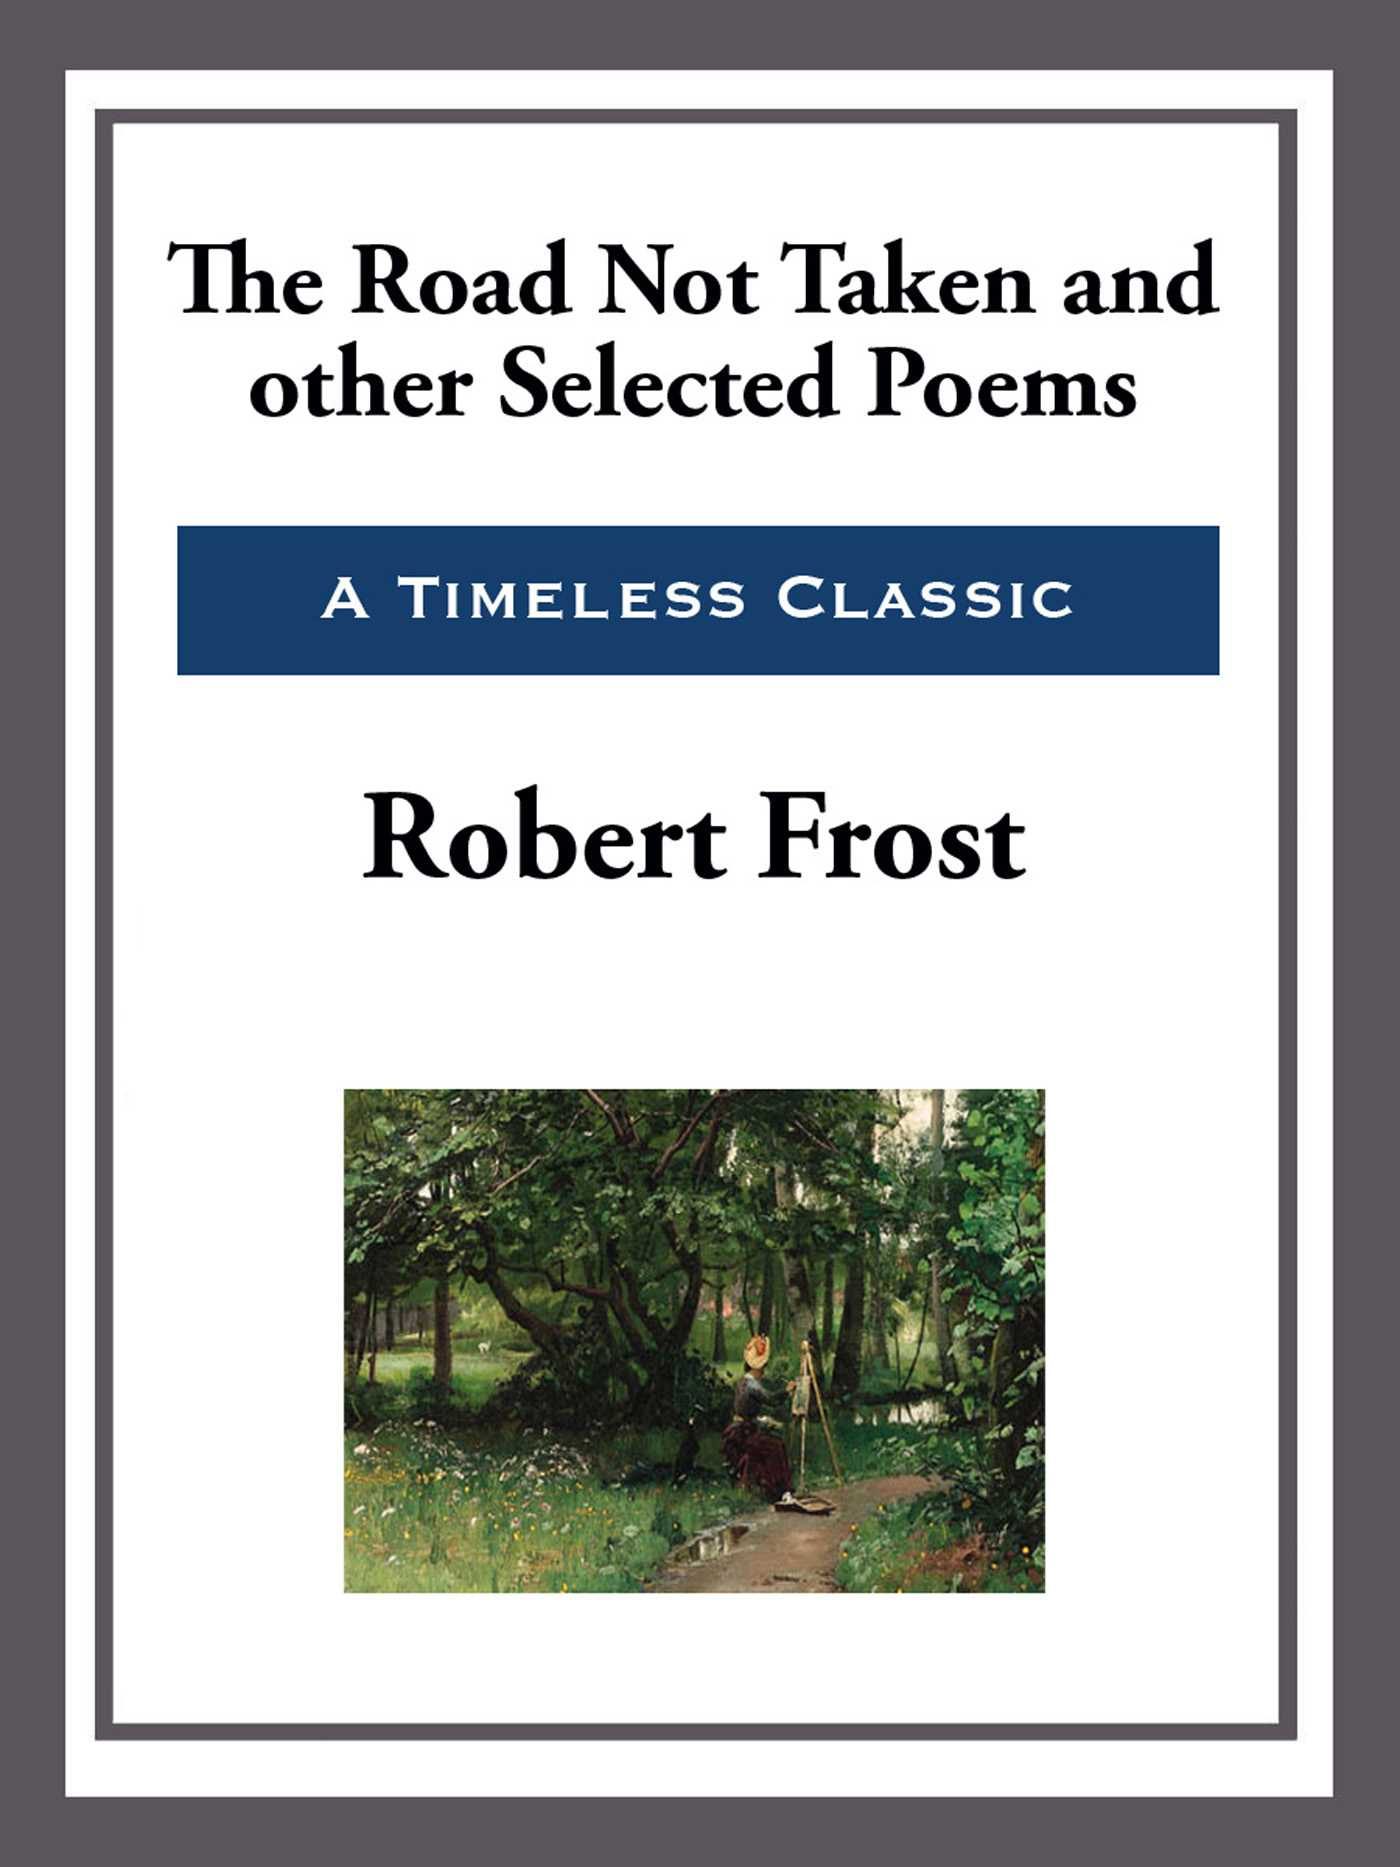 the story behind robert frosts poem the road not taken